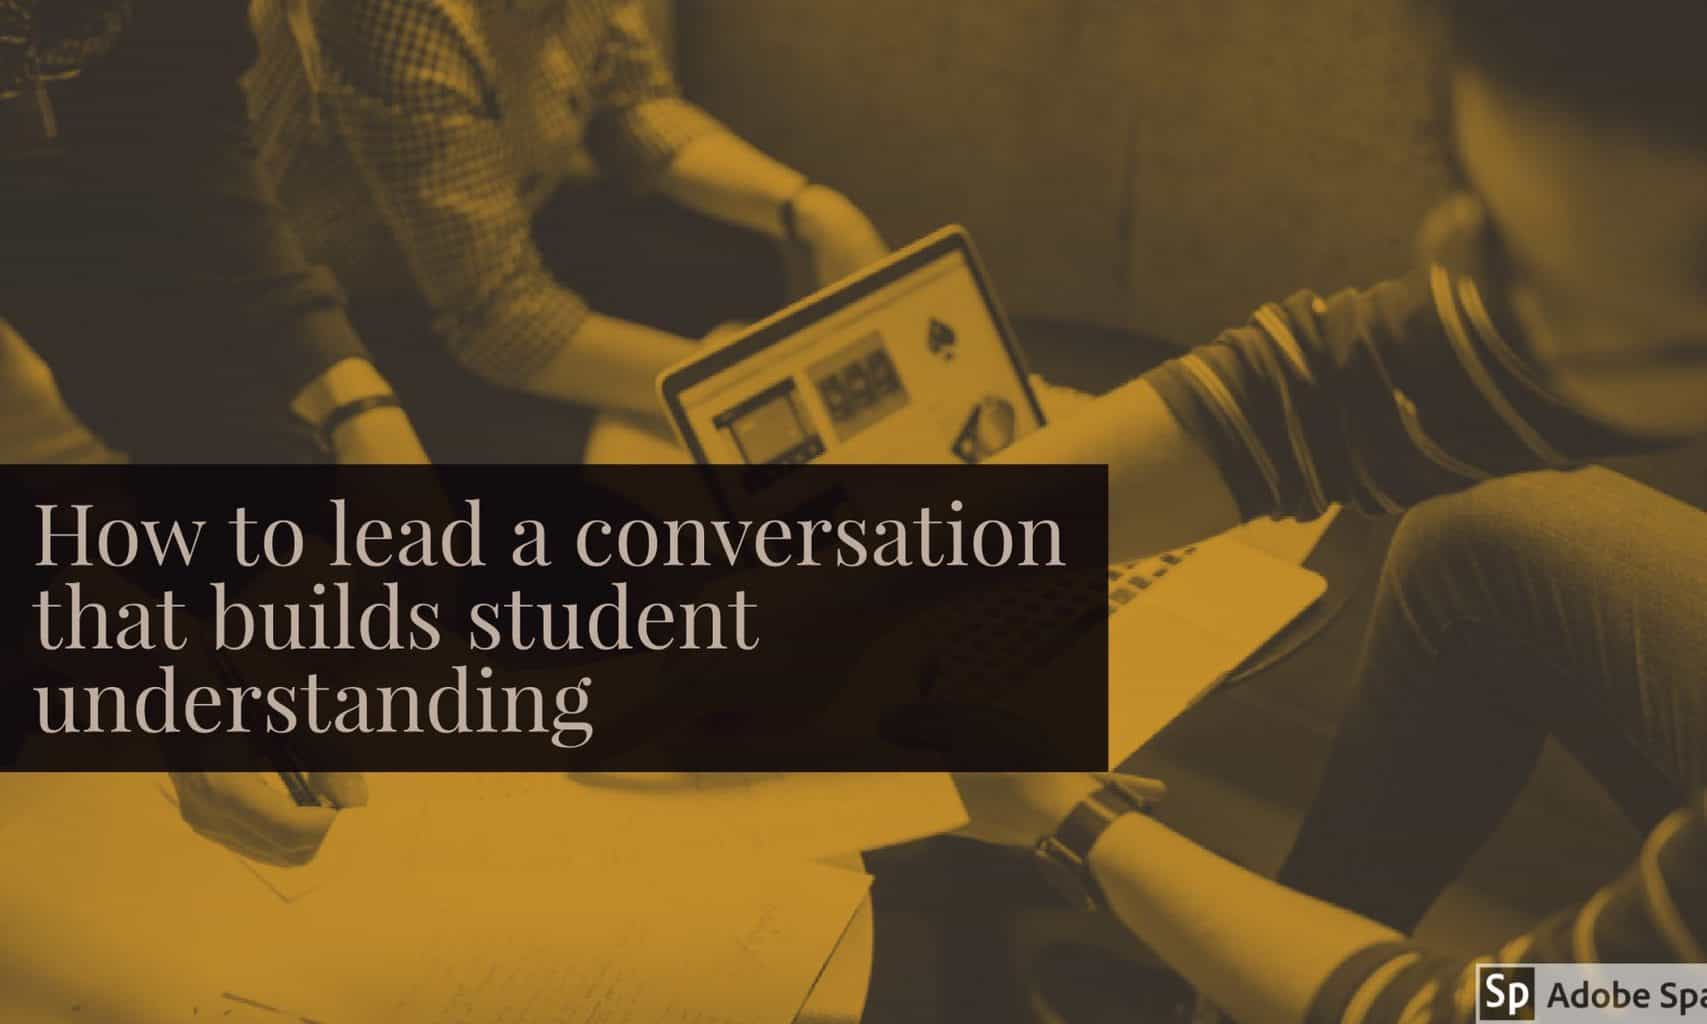 How to lead a conversation that builds student understanding